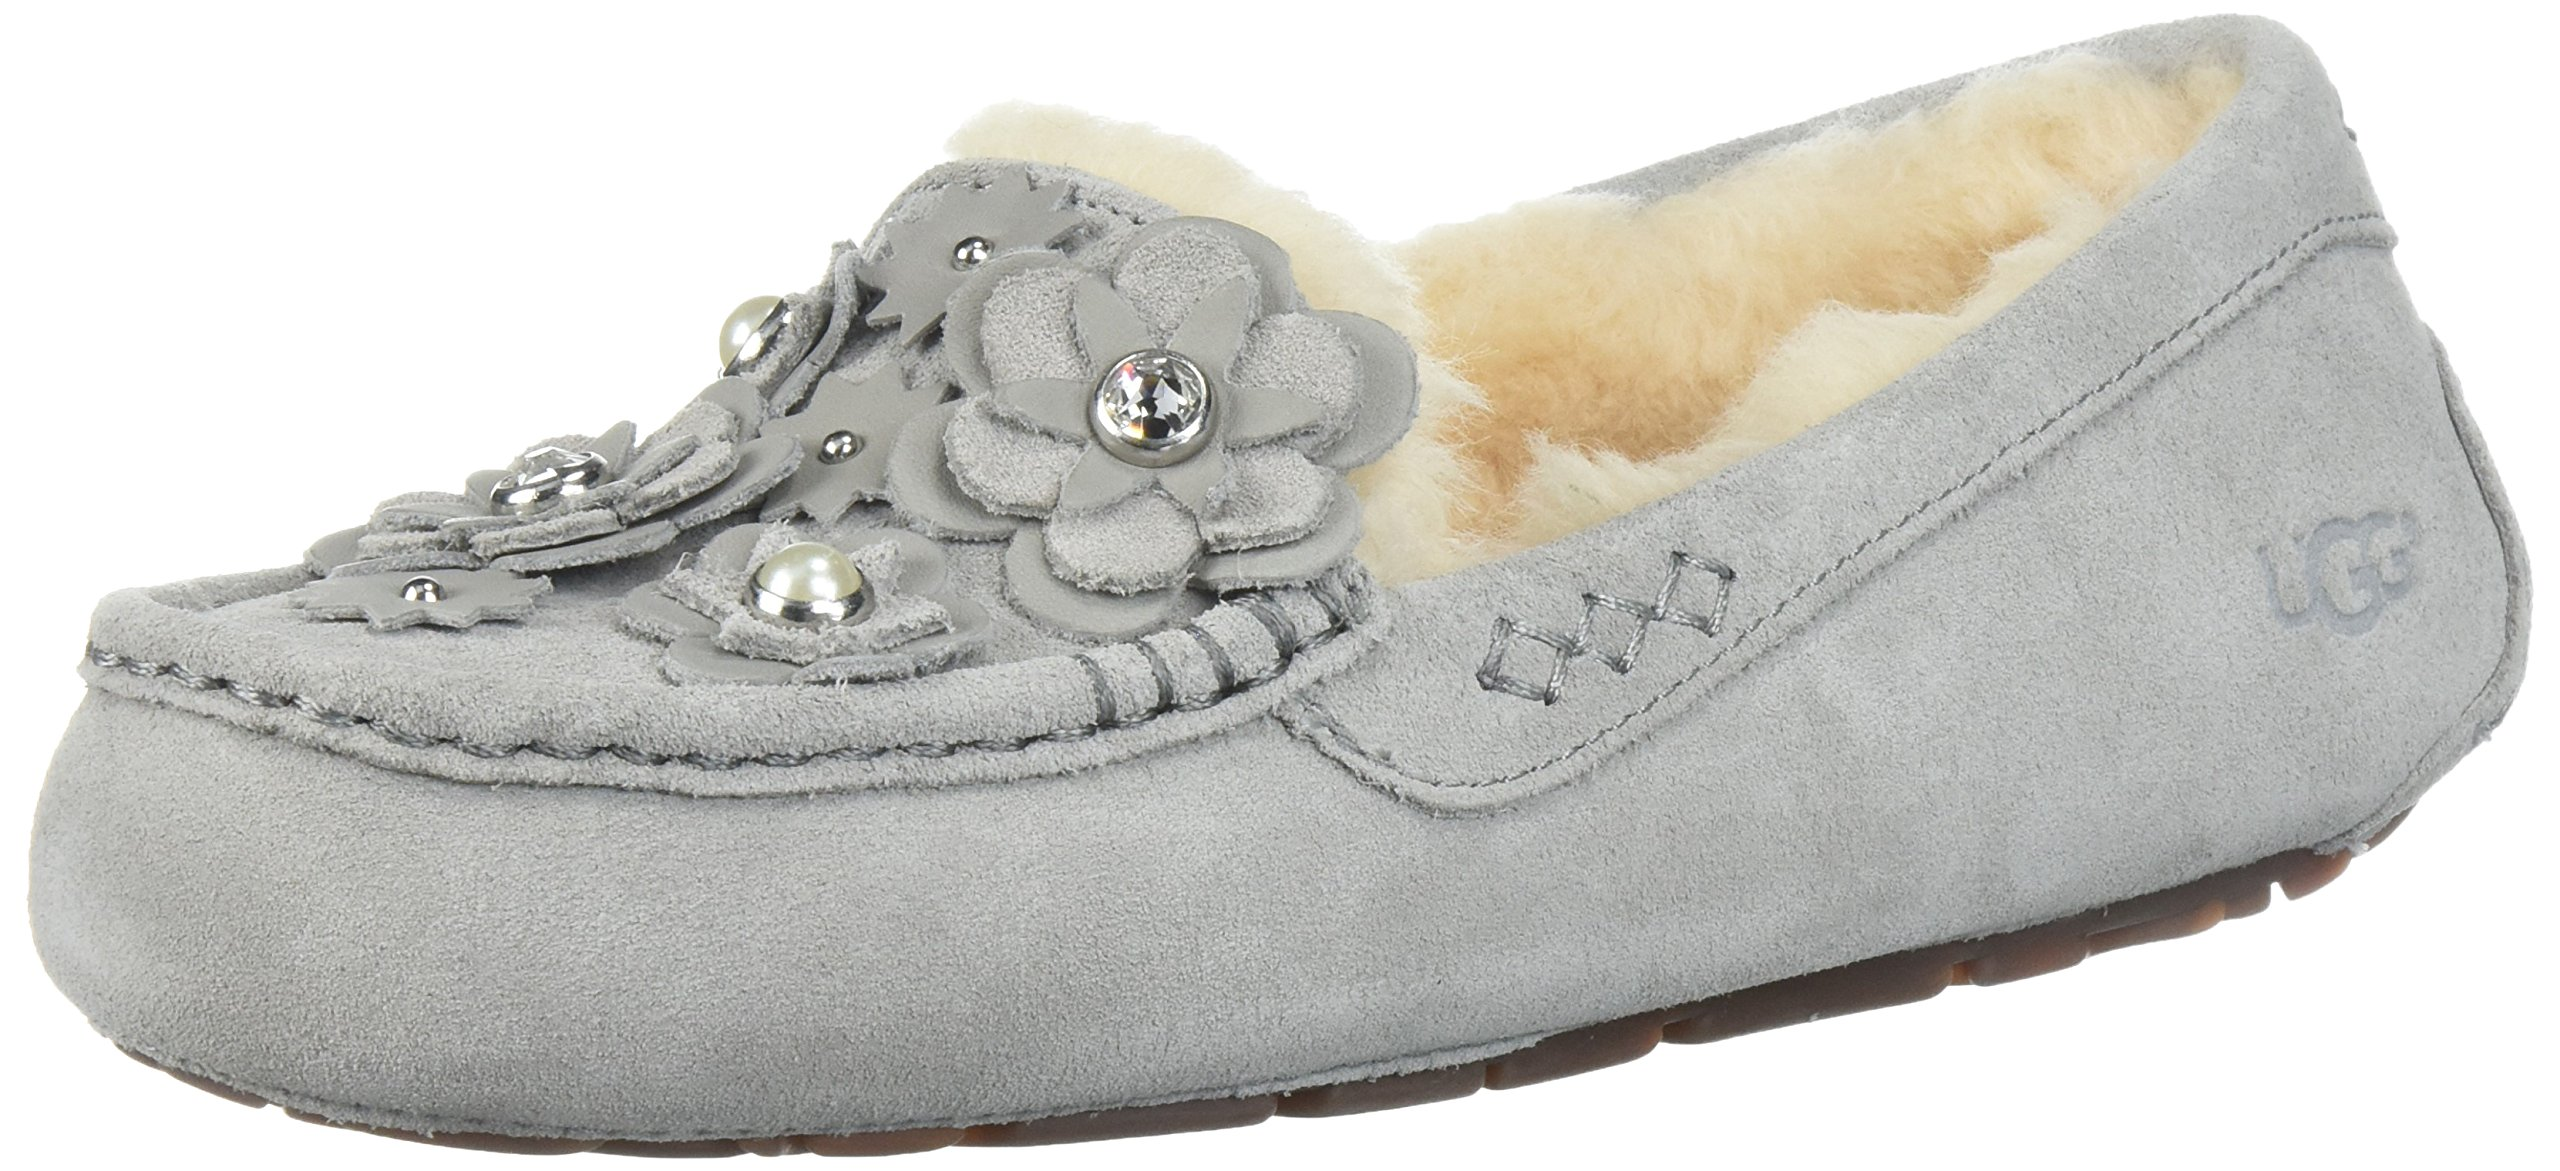 UGG Women's Ansley Petal Slipper, Seal, 9 M US by UGG